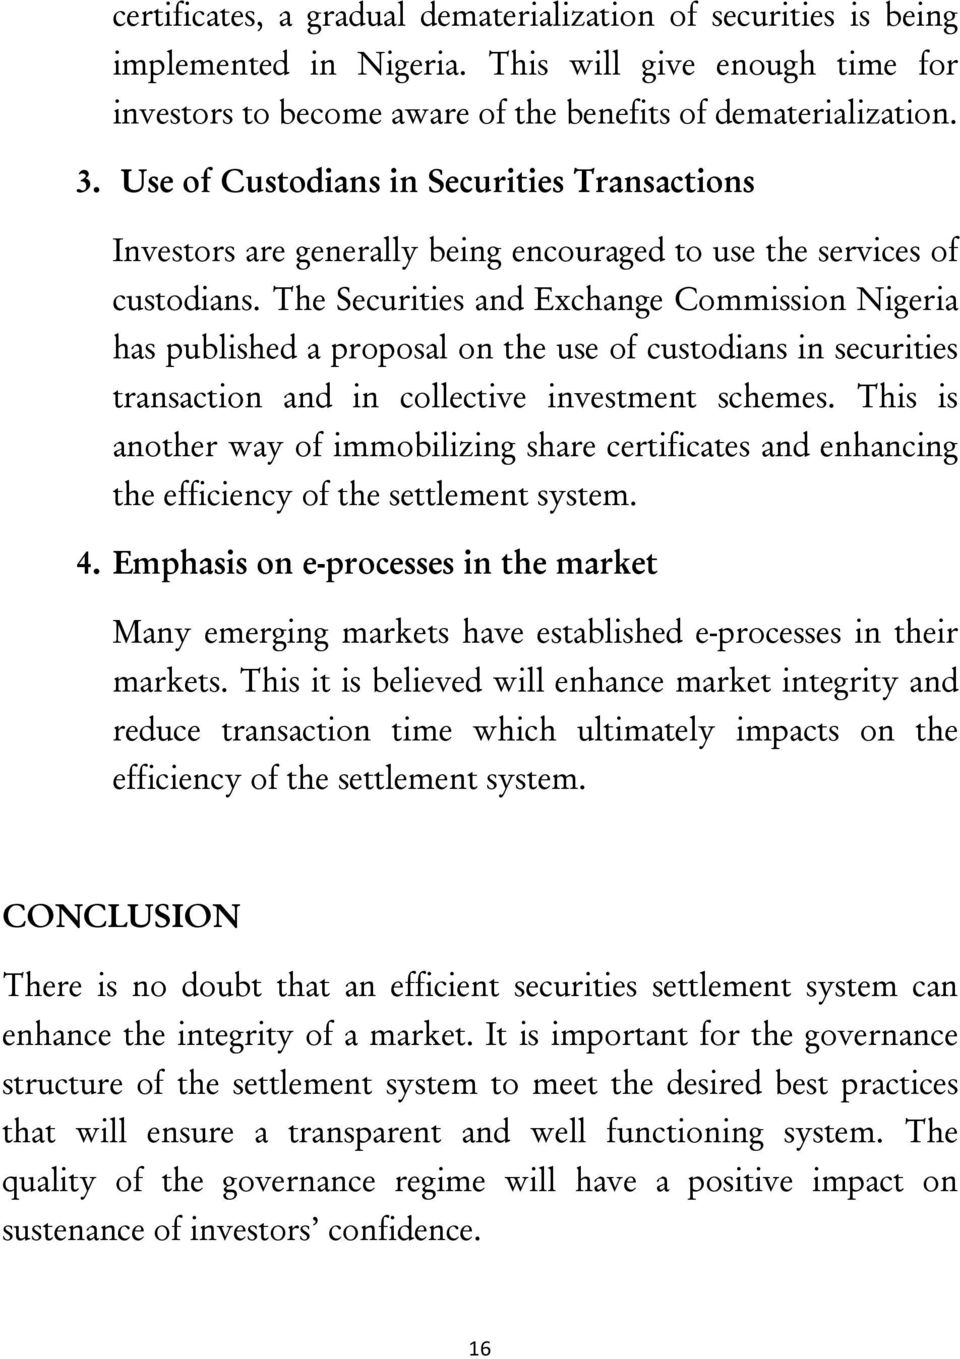 The Securities and Exchange Commission Nigeria has published a proposal on the use of custodians in securities transaction and in collective investment schemes.